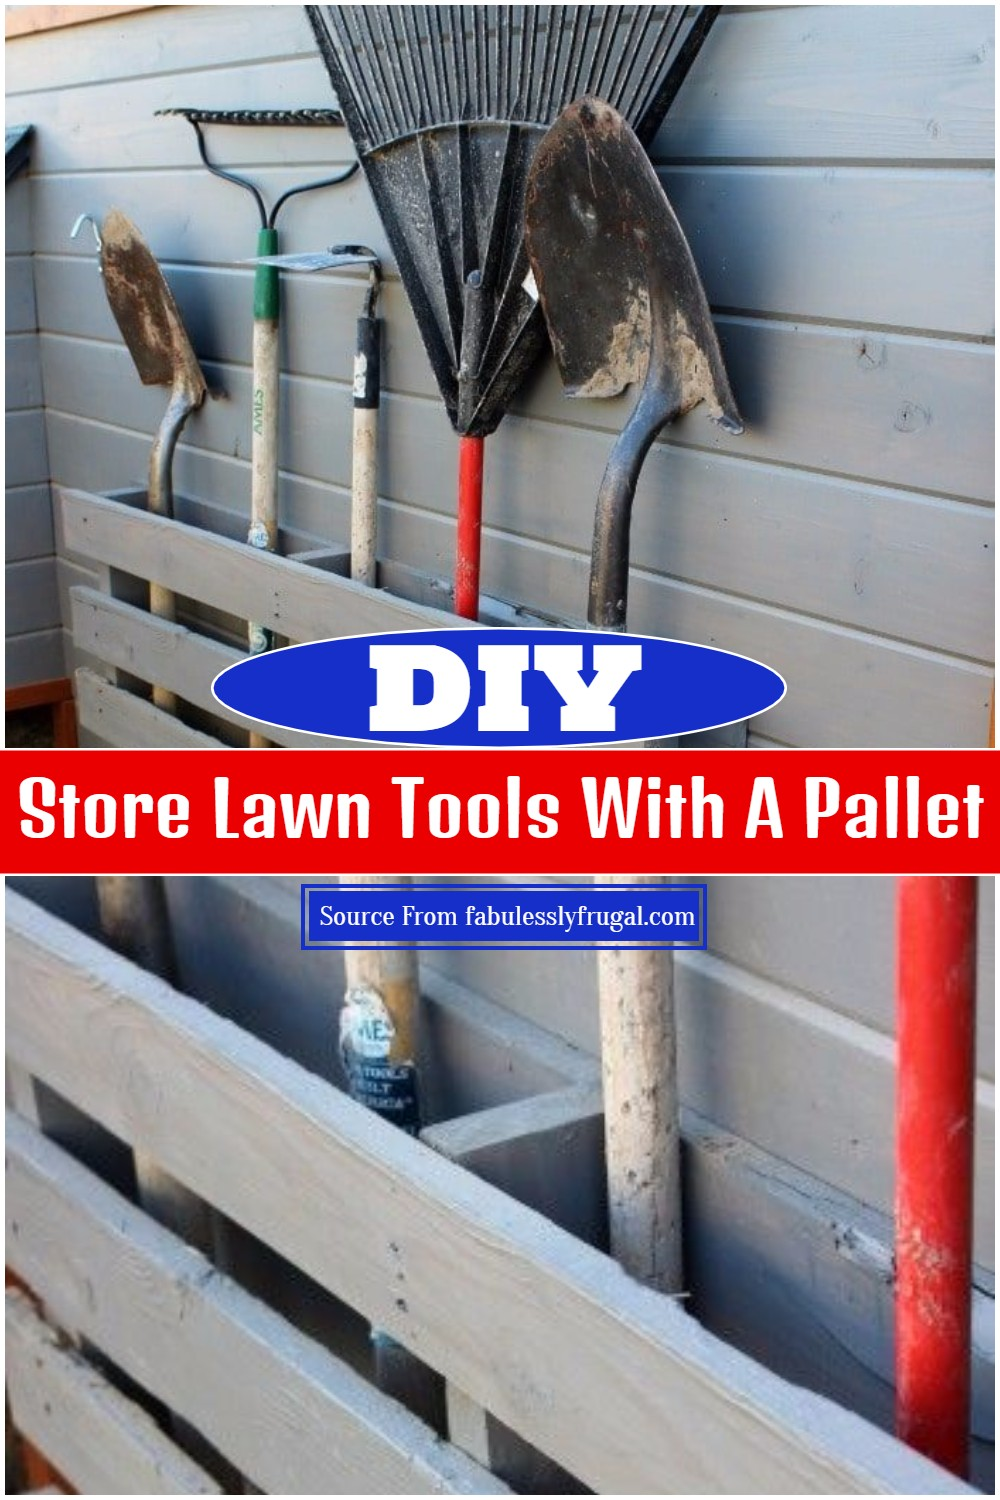 DIY Store Lawn Tools With A Pallet